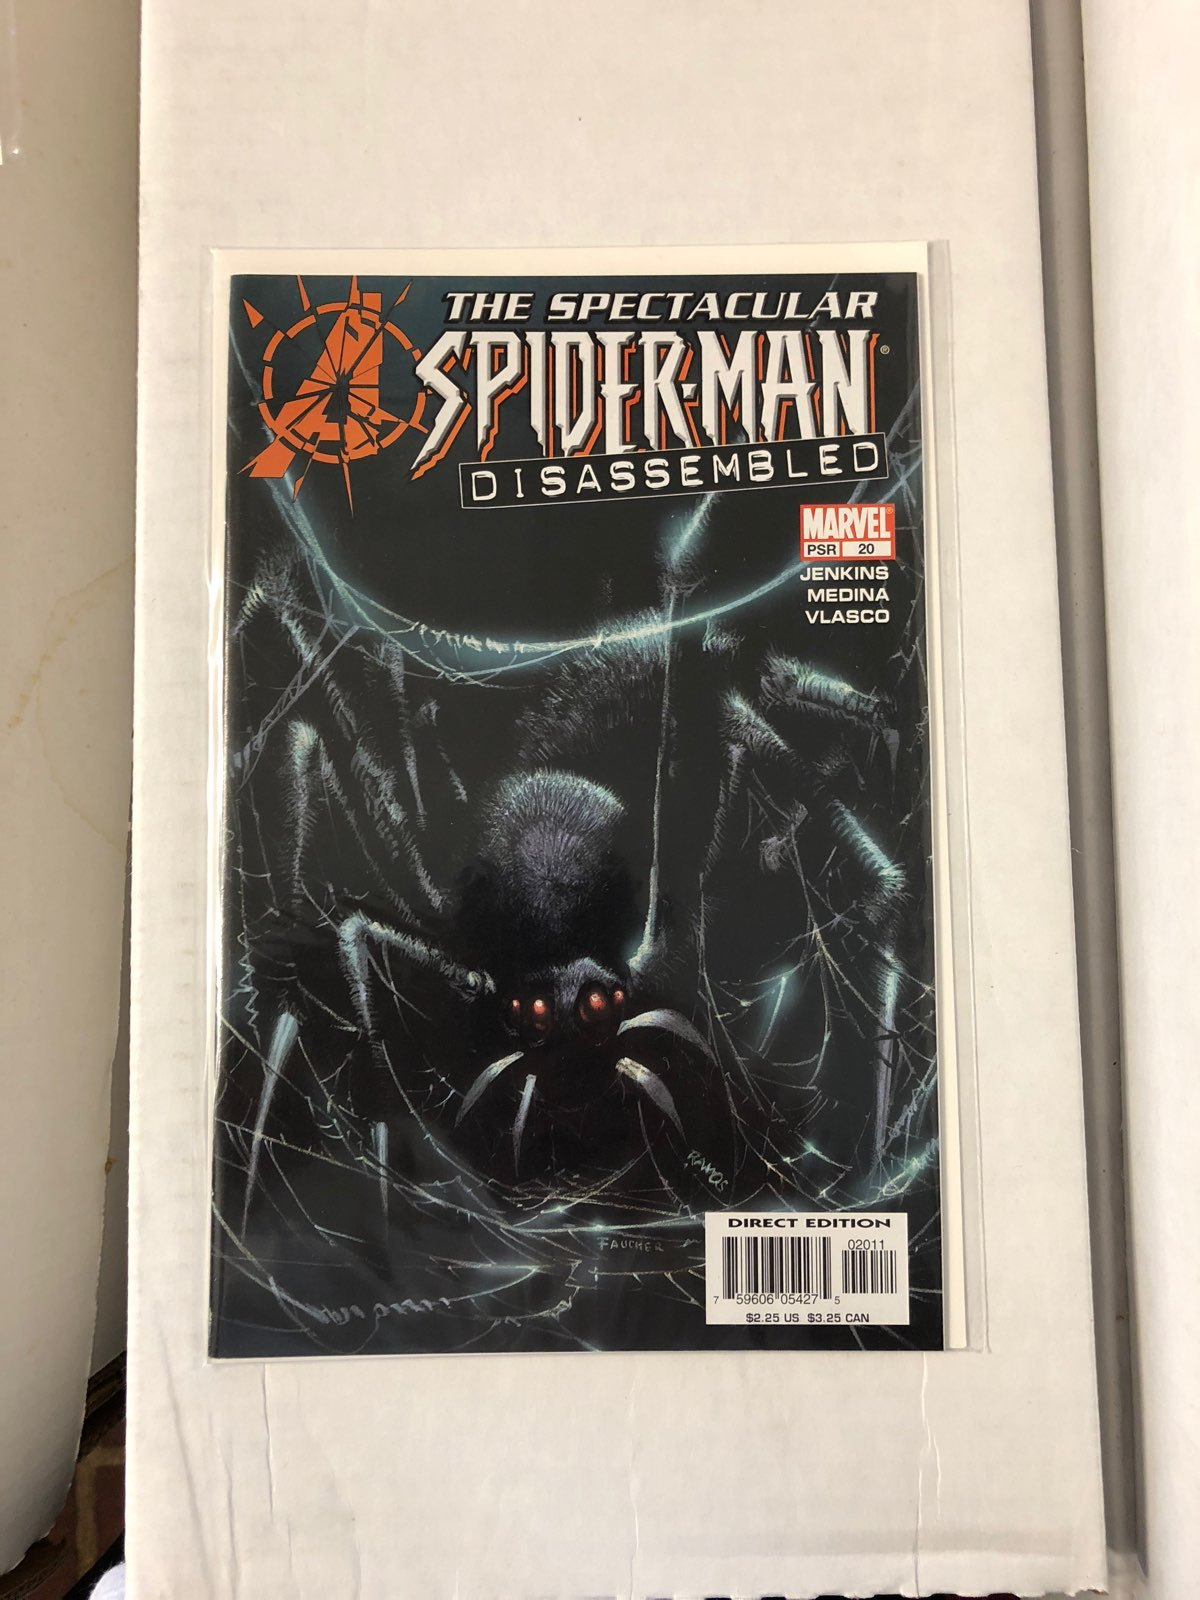 The Spectacular Spider-Man #20